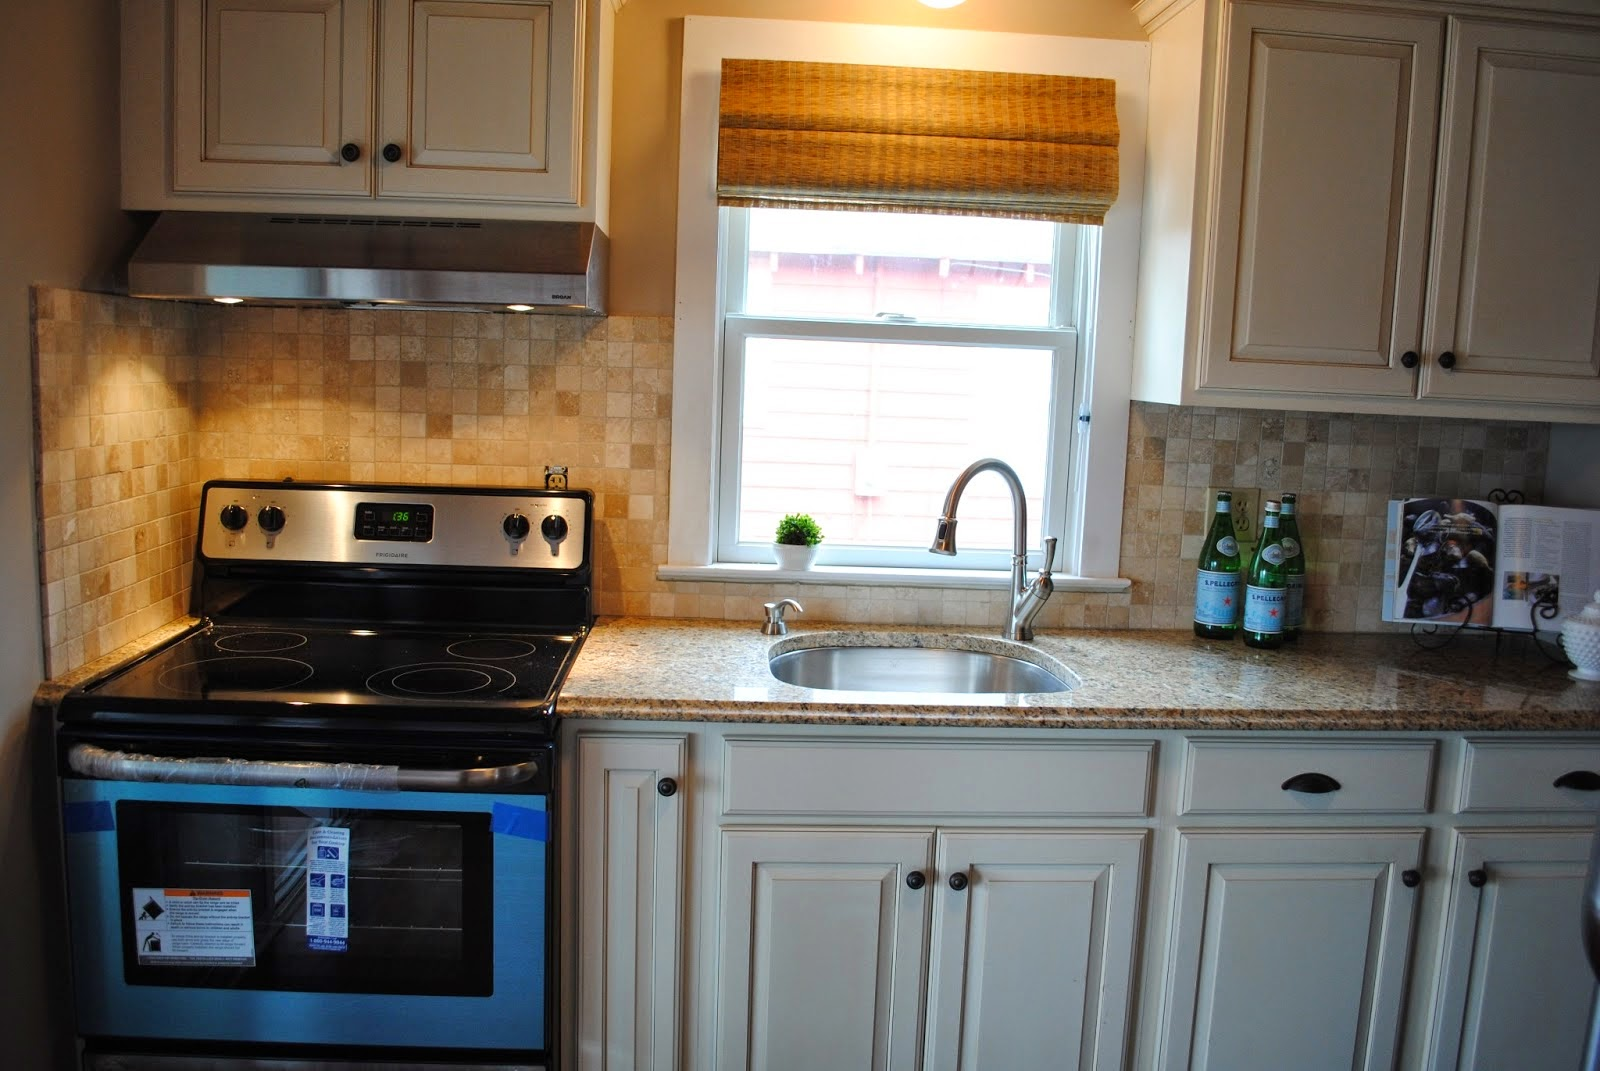 Over The Kitchen Sink Lighting Nook Furniture Energy Saving Tips From House Smart Home Improvements